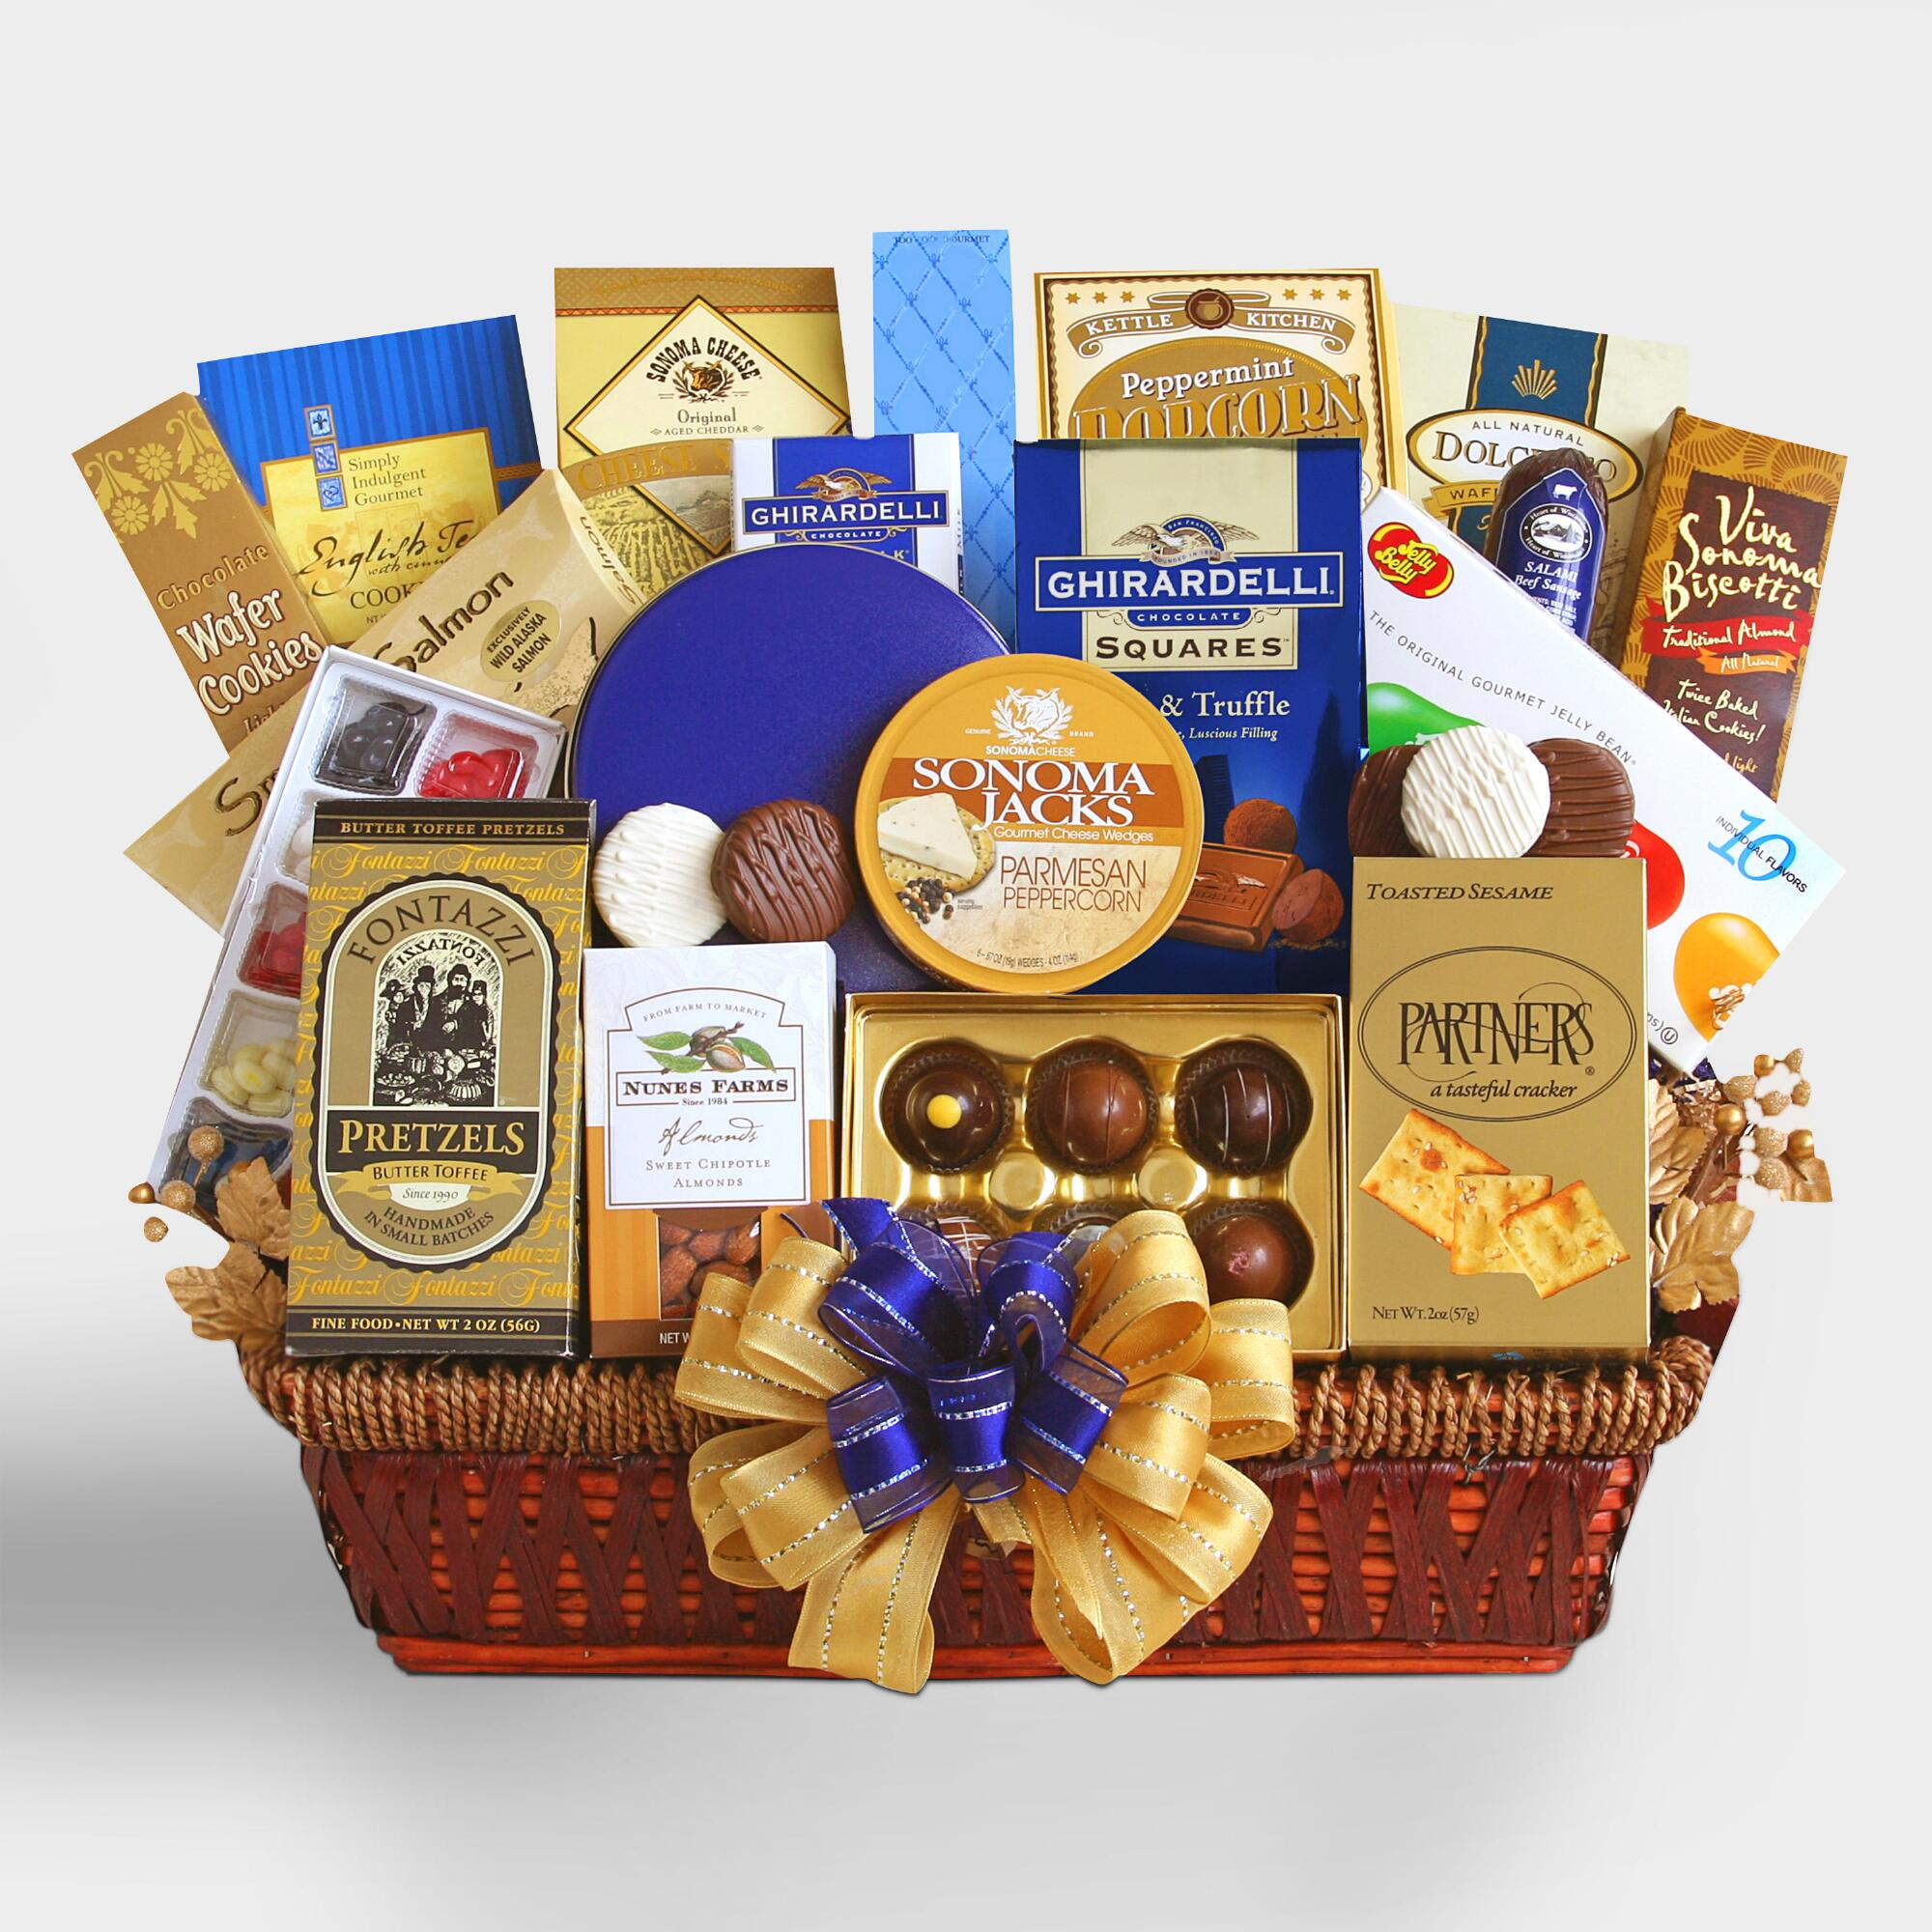 Executive Decision Gift Basket by World Market